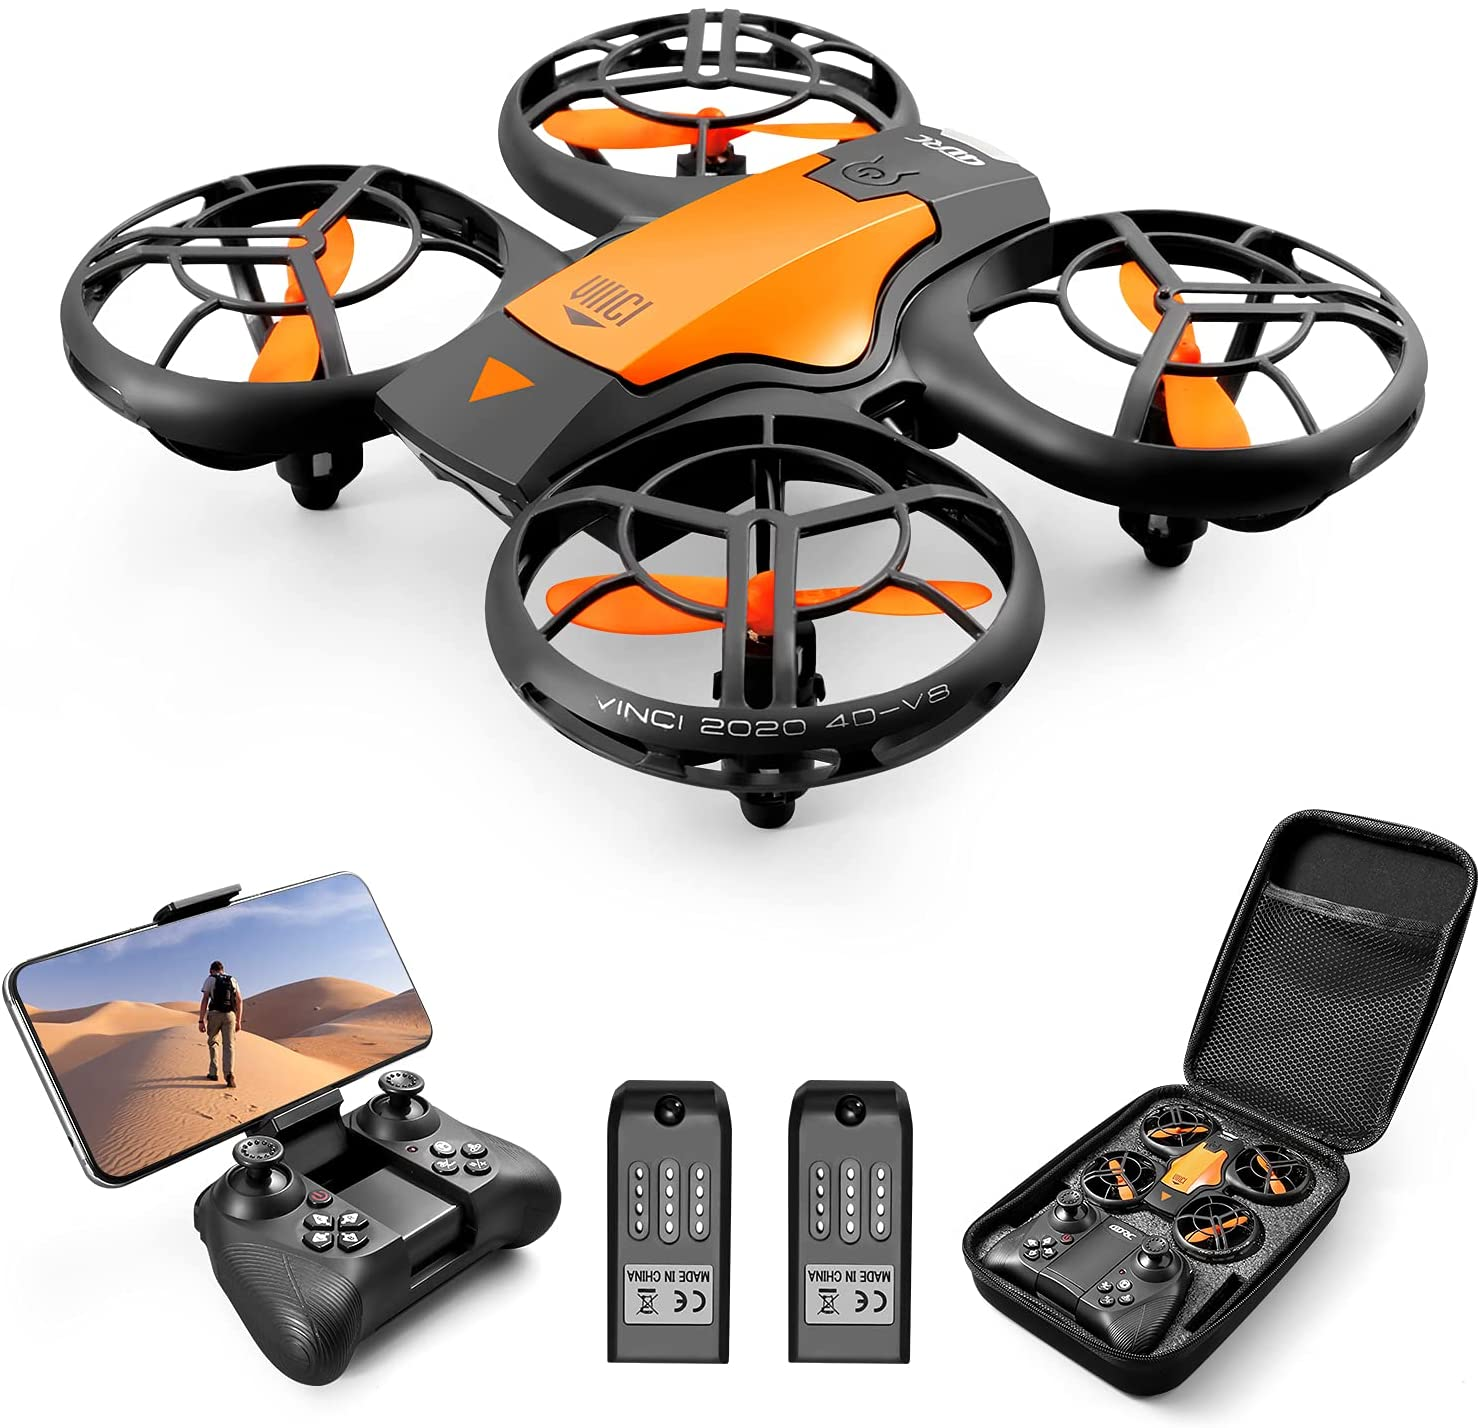 4DV8 RC Drone with 720P Camera for Adults kids,Hand Operated/ Remote Control Quadcopter Toys, 2.4G FPV Live Video, With 2